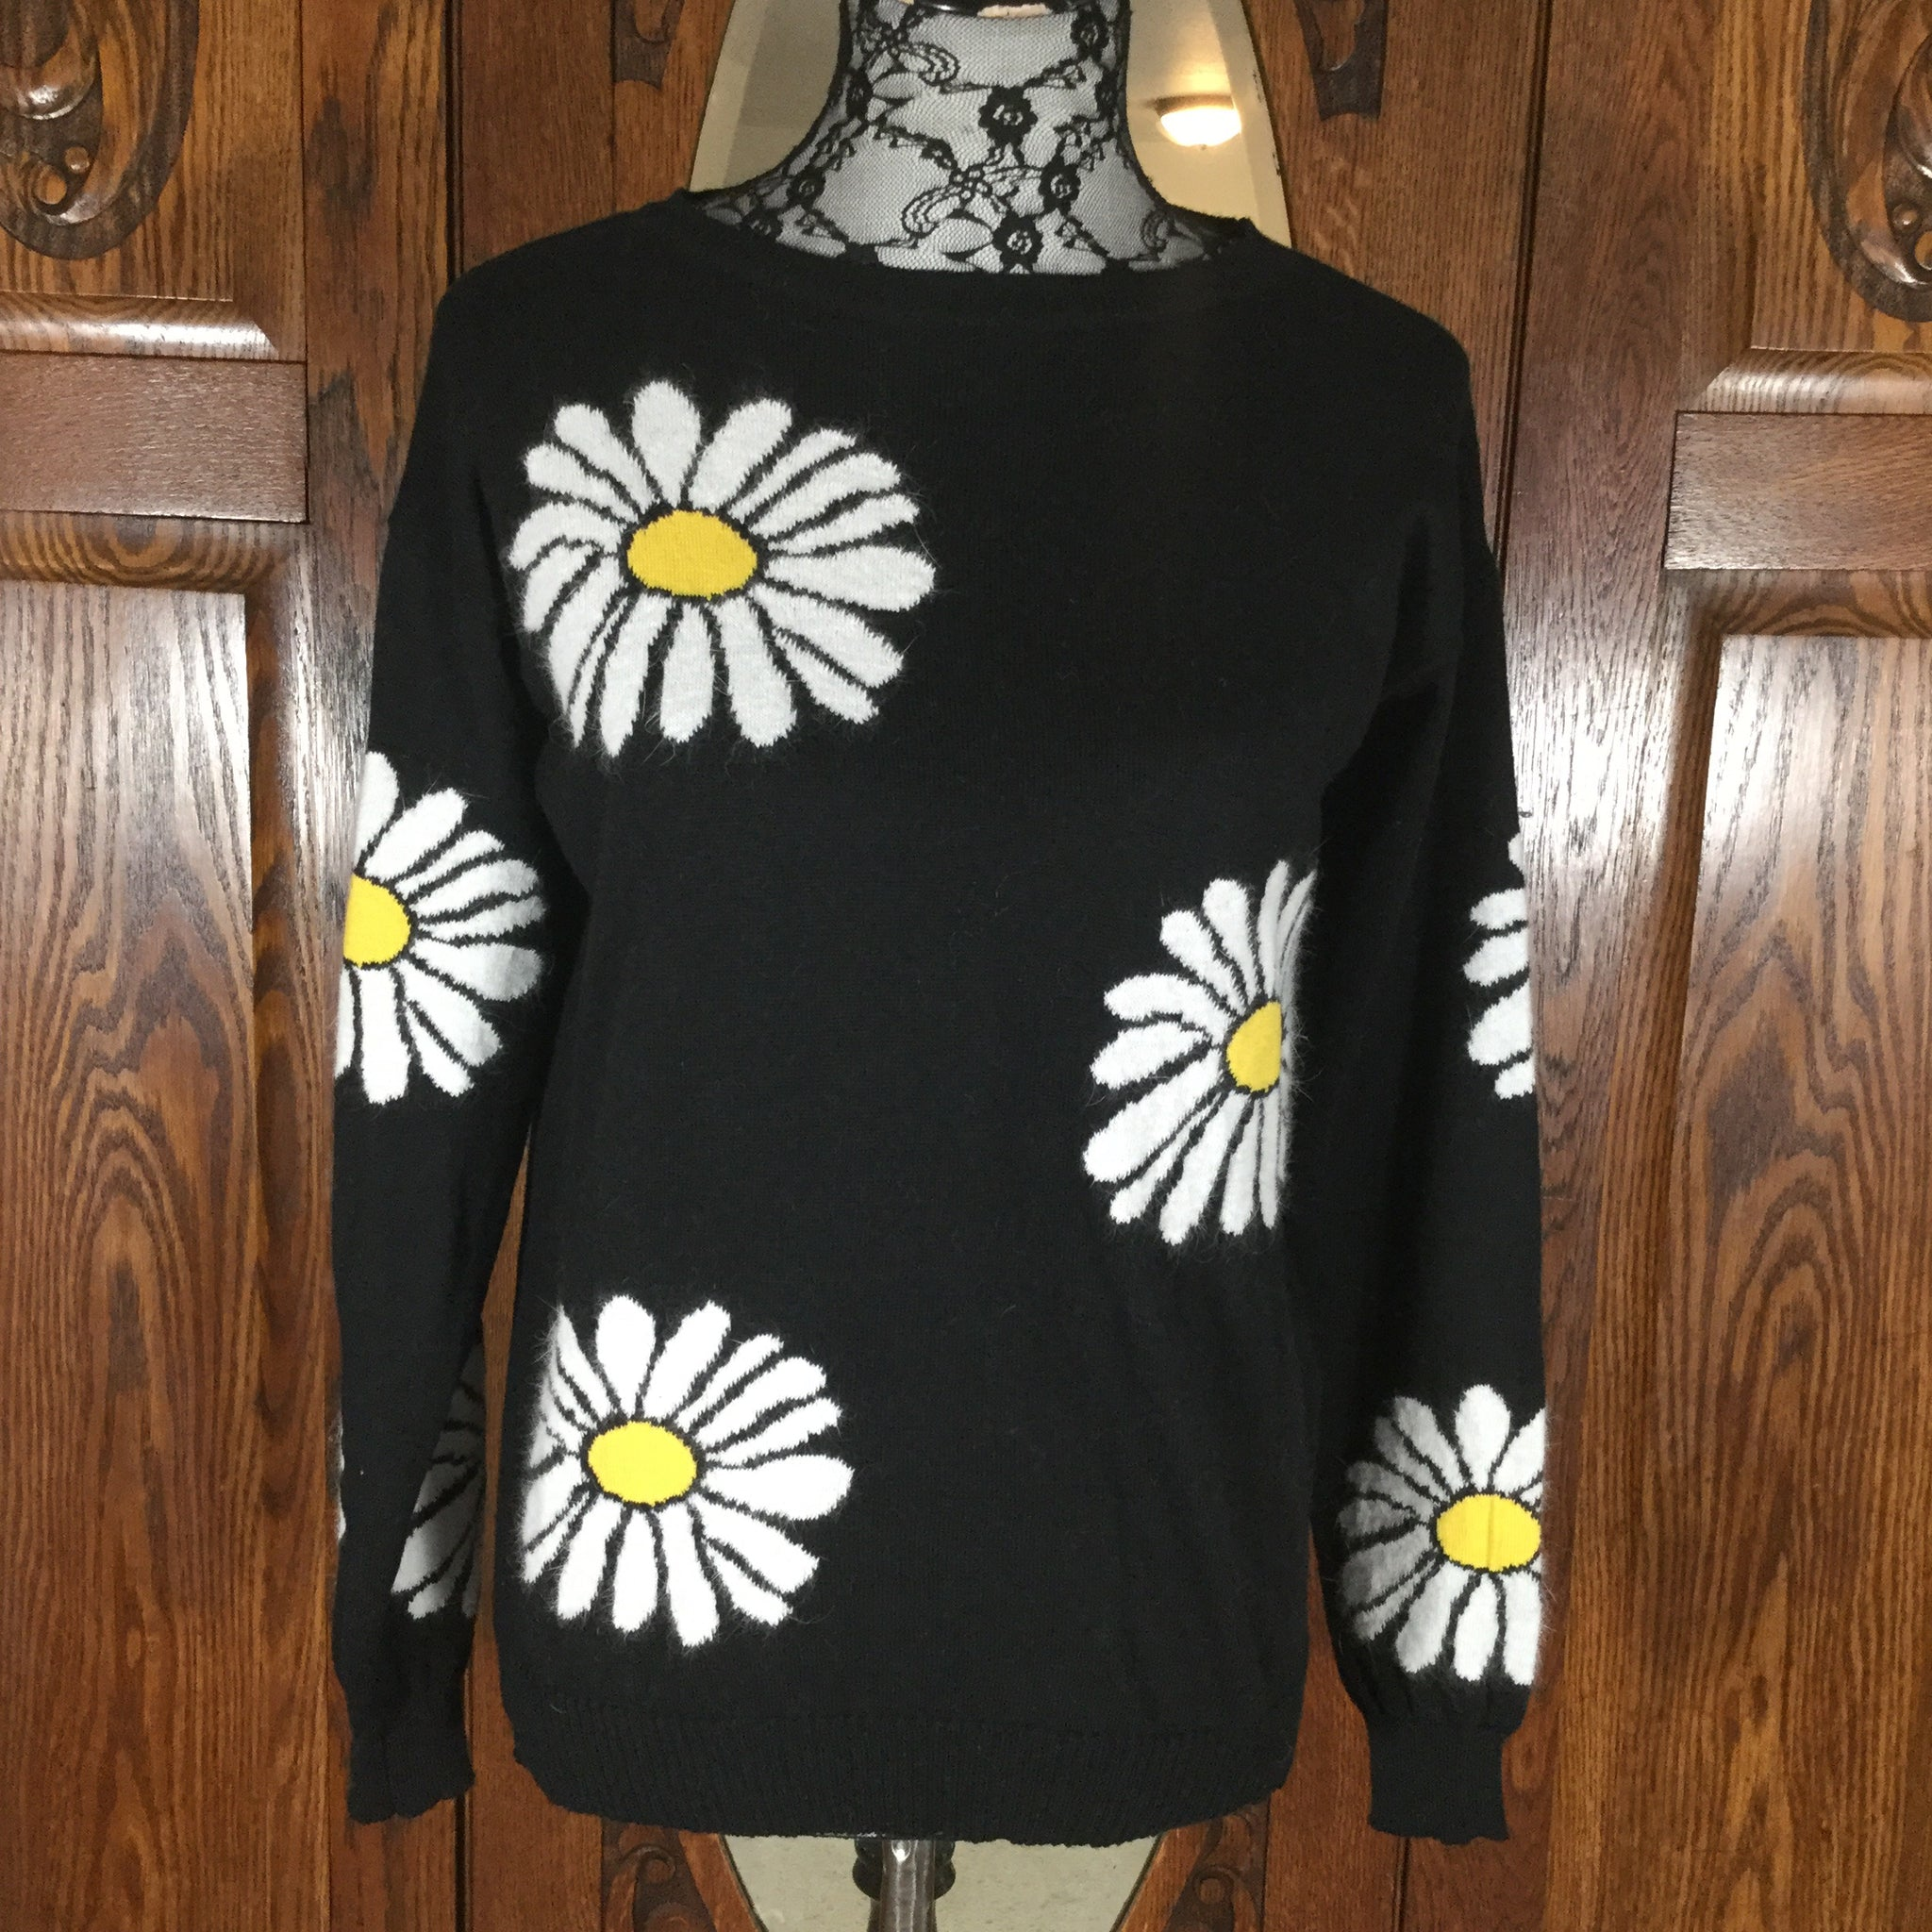 Black and White Daisy Print Long Sleeve 100% Cotton Sweater Size M